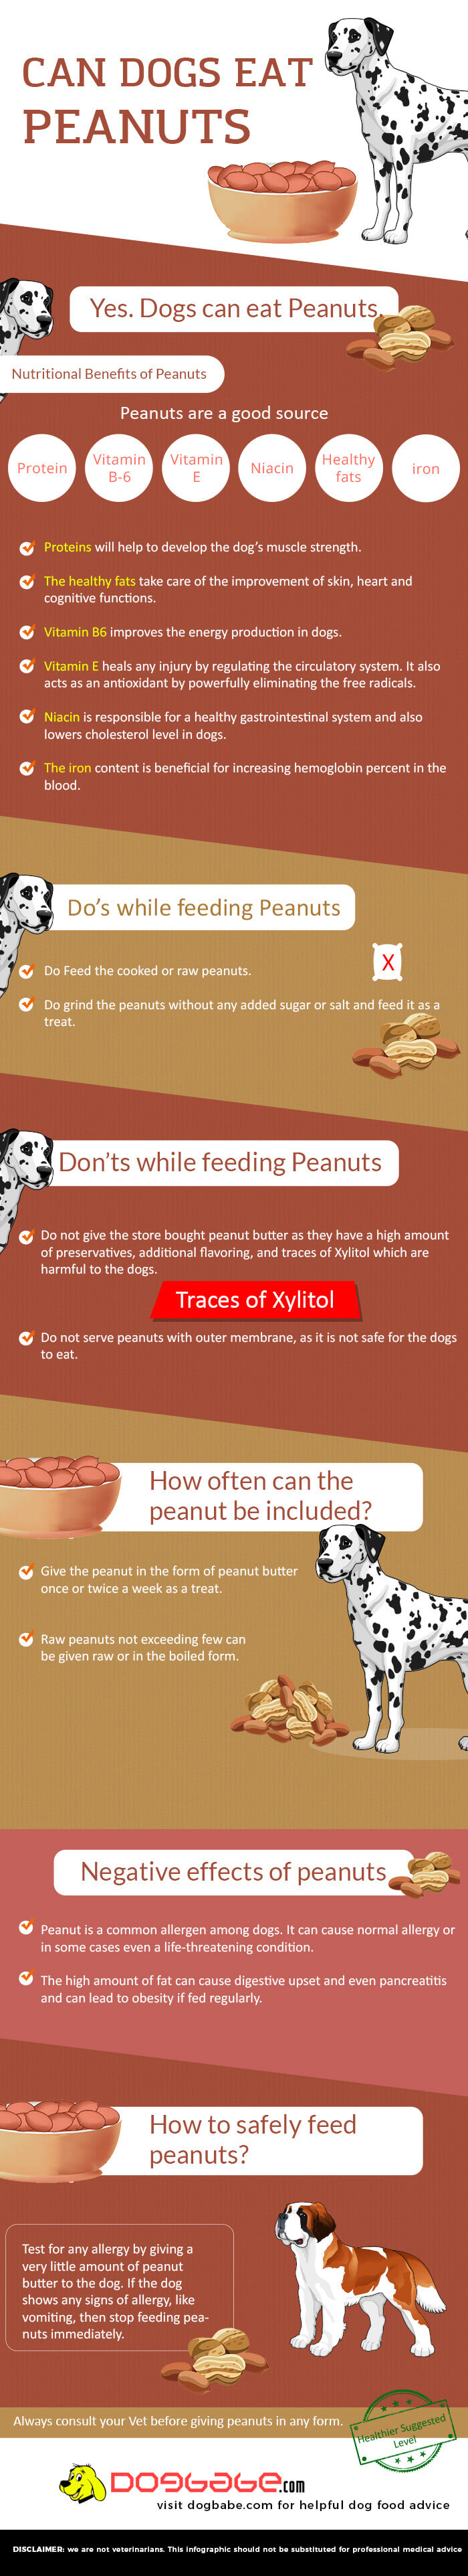 Can dogs eat peanuts infographic